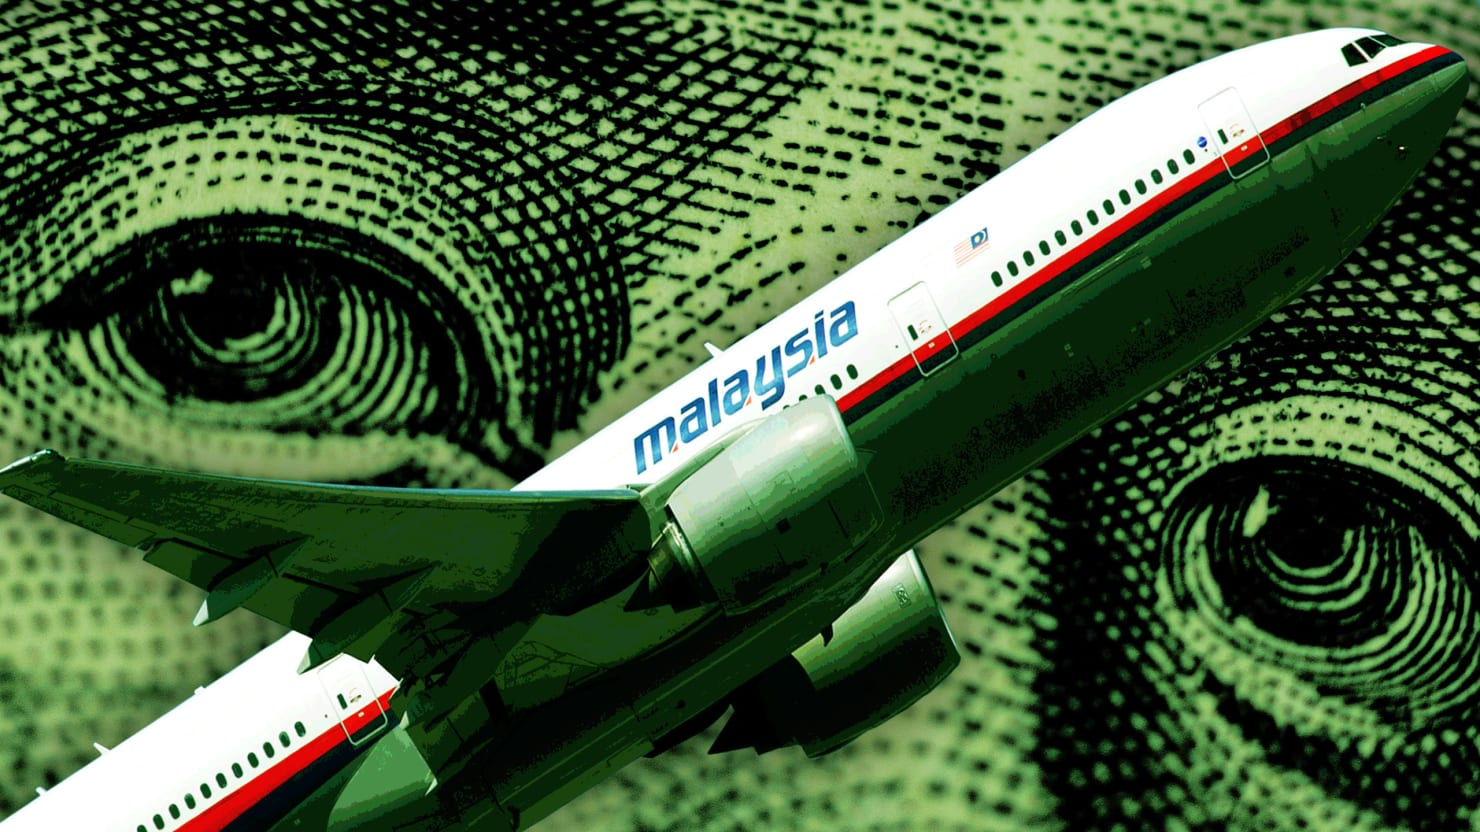 Scientists Say They Know Where MH370 Is—Just as Money Runs Out to Find It